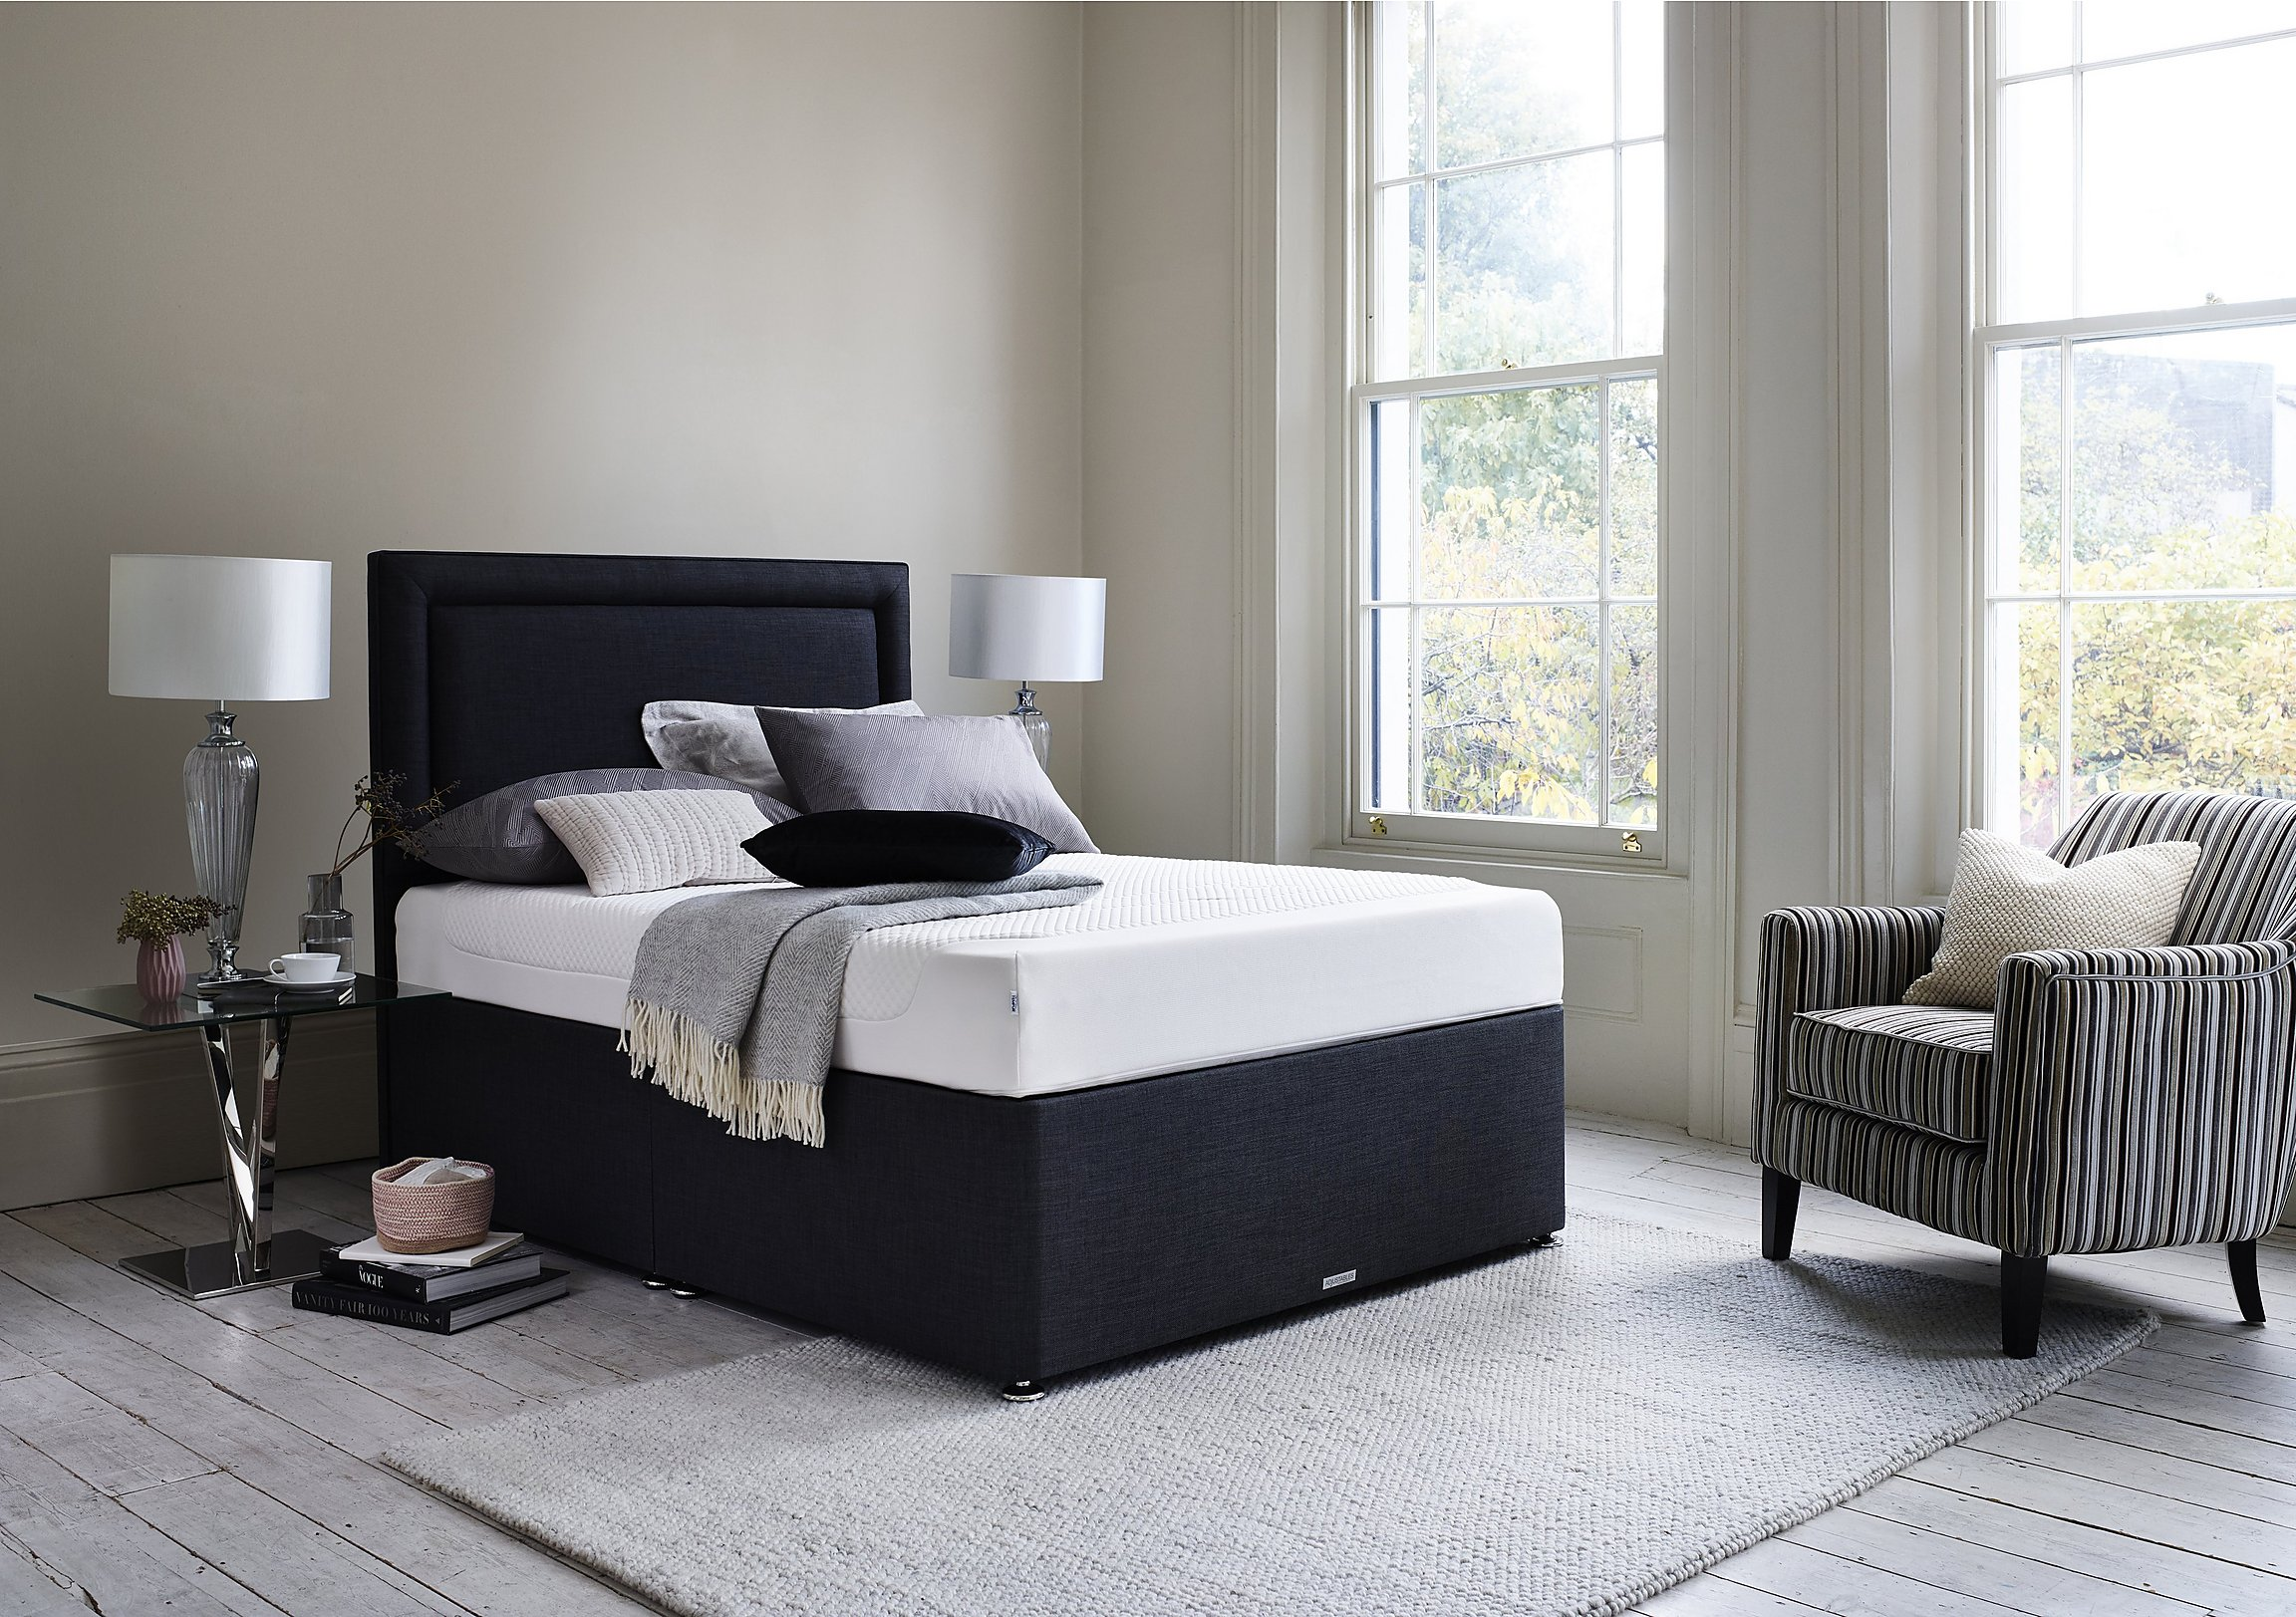 Lifestyle Solutions Bedroom Furniture Solutions Side Lift Ottoman Bed Frame Furniture Village